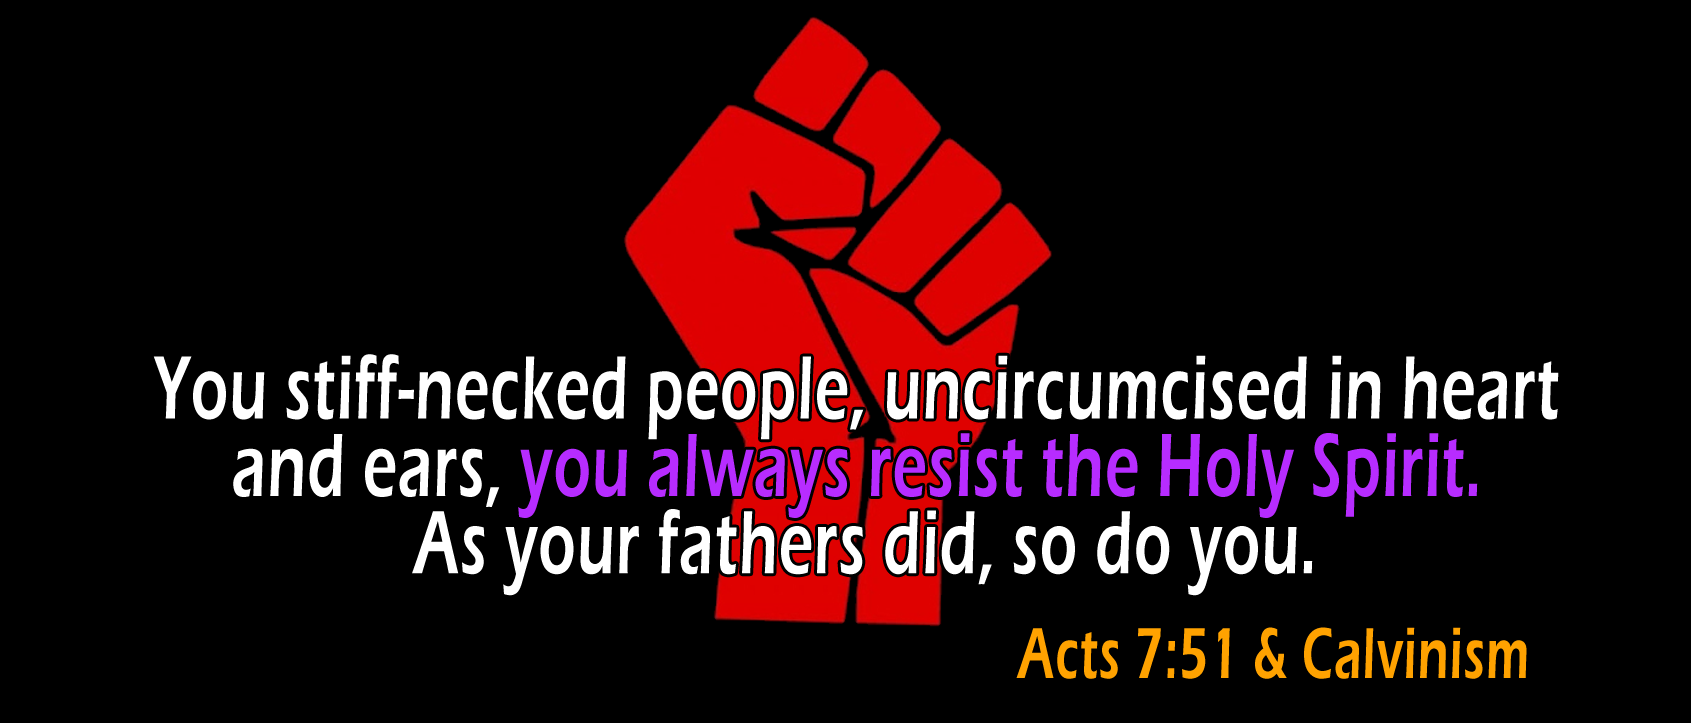 Acts 7:51, 'You always resist the Holy Spirit'